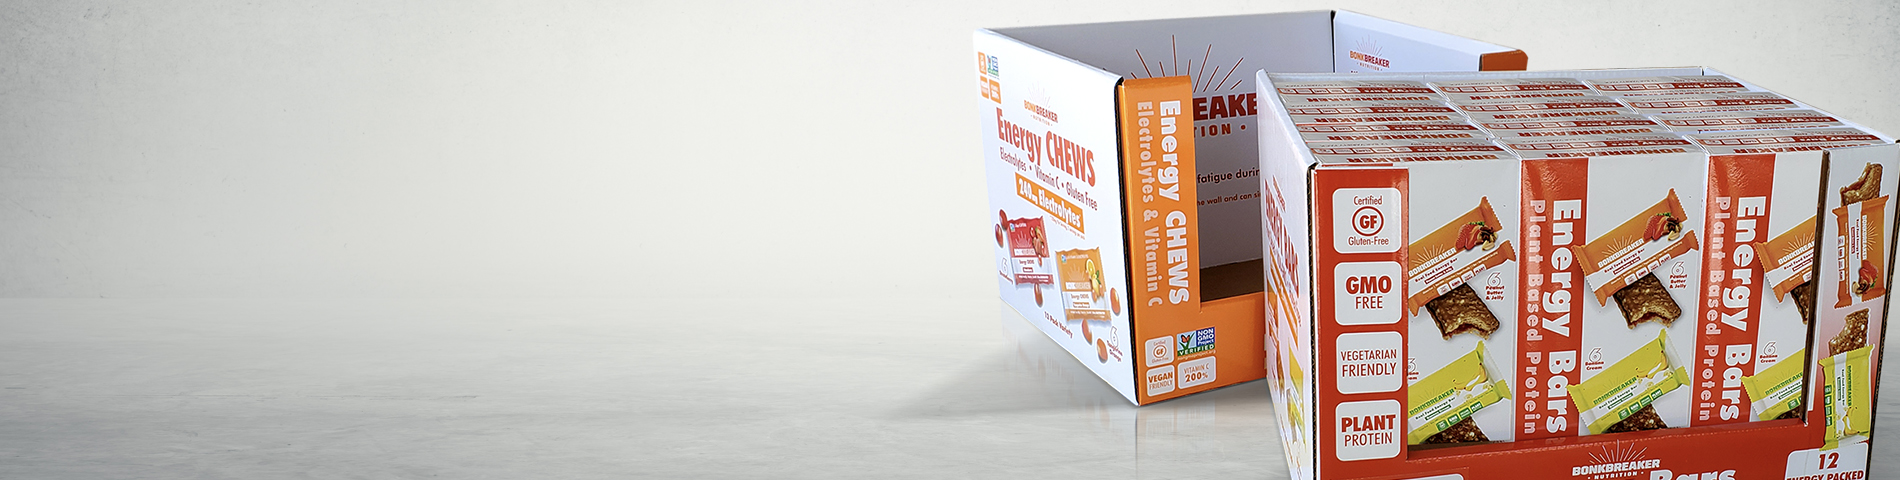 Retail Ready Food Packaging - Bay Cities